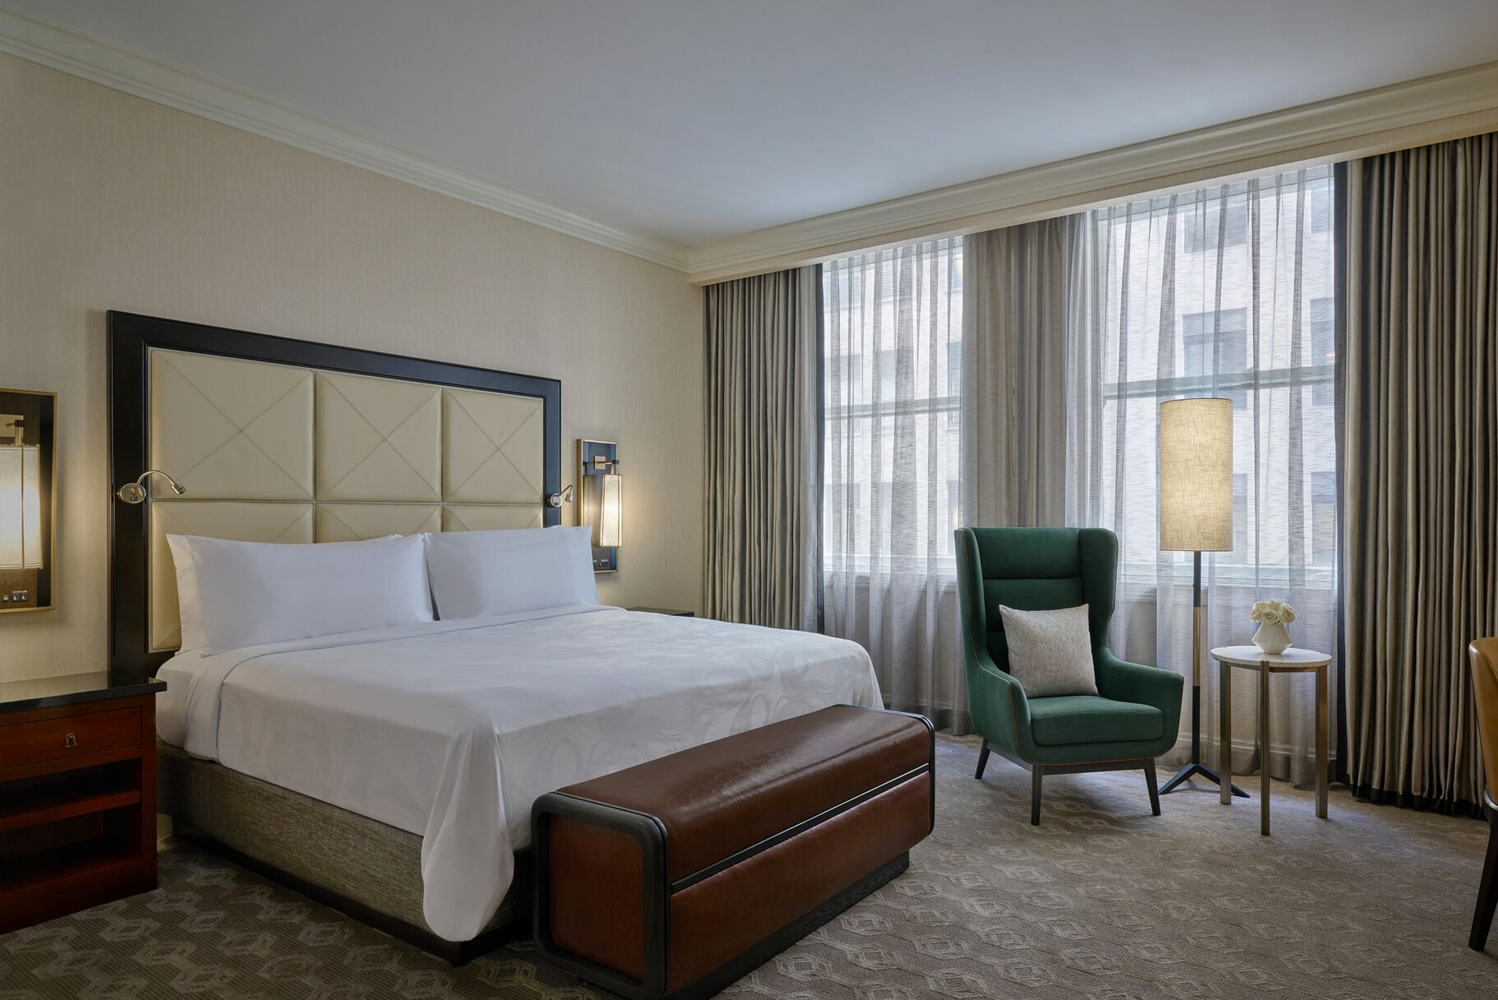 JW Marriott Chicago is redesigning all of its 610 guestrooms (including 29 suites), hotel corridors, and the executive lounge.